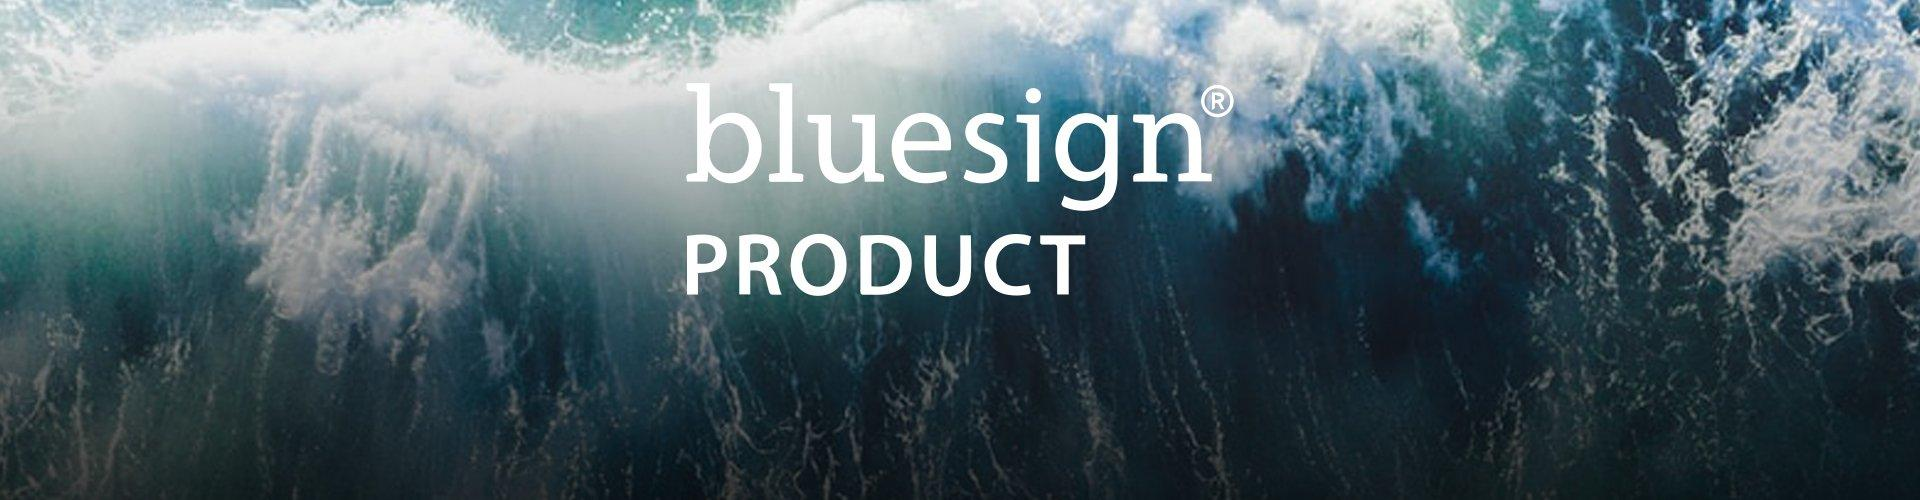 An aerial image of an ocean with a wave breaking with text saying bluesign product.